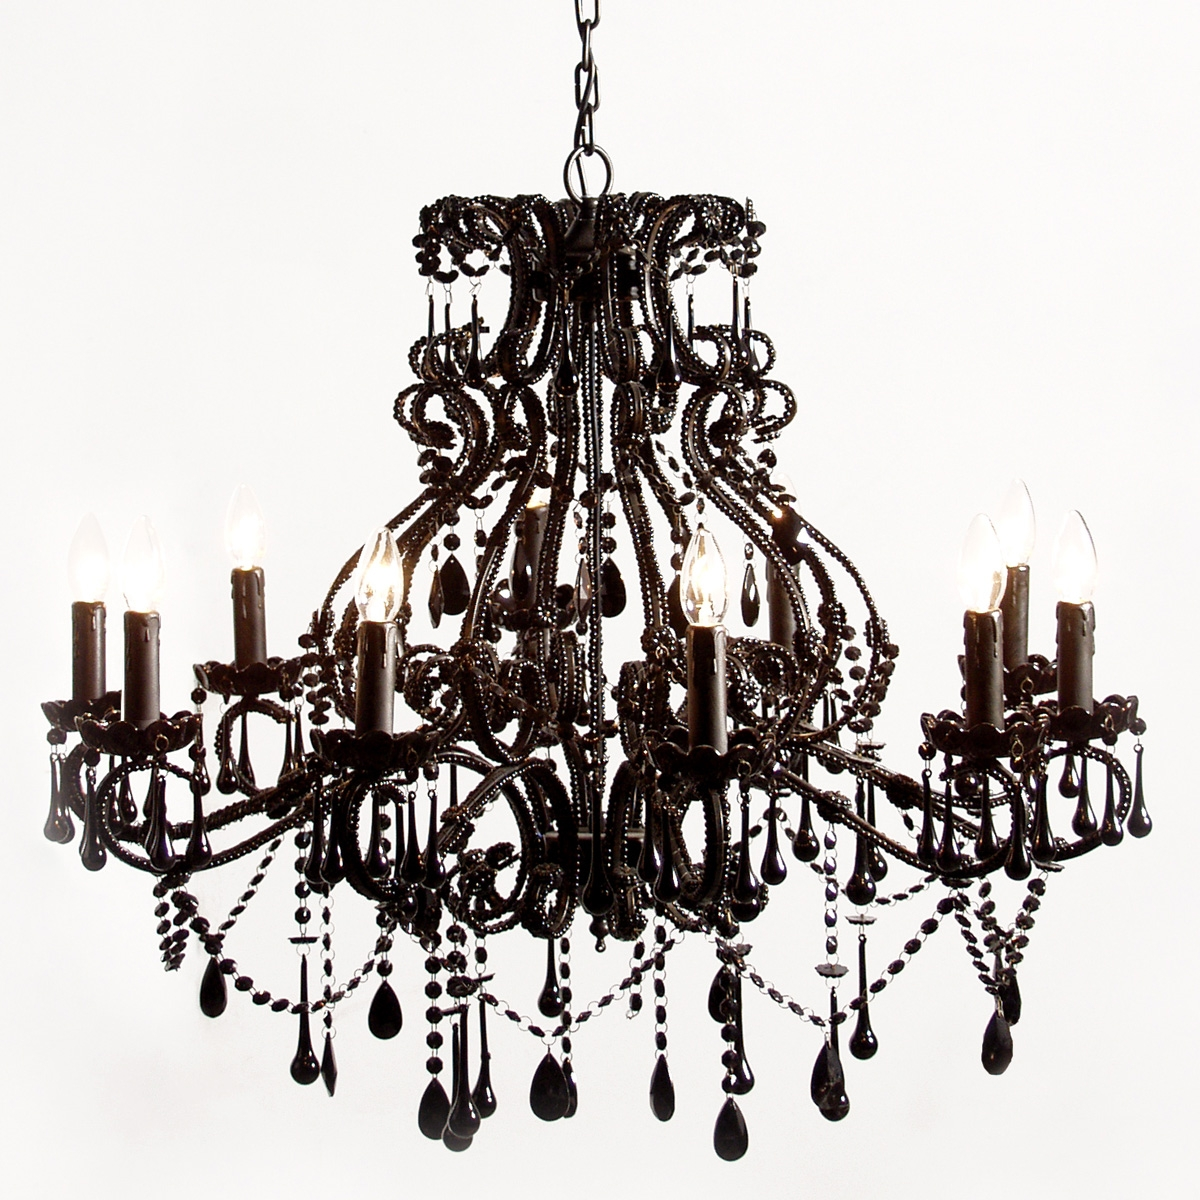 Black Chandelier Lighting Regarding Black Chandeliers (Image 4 of 15)